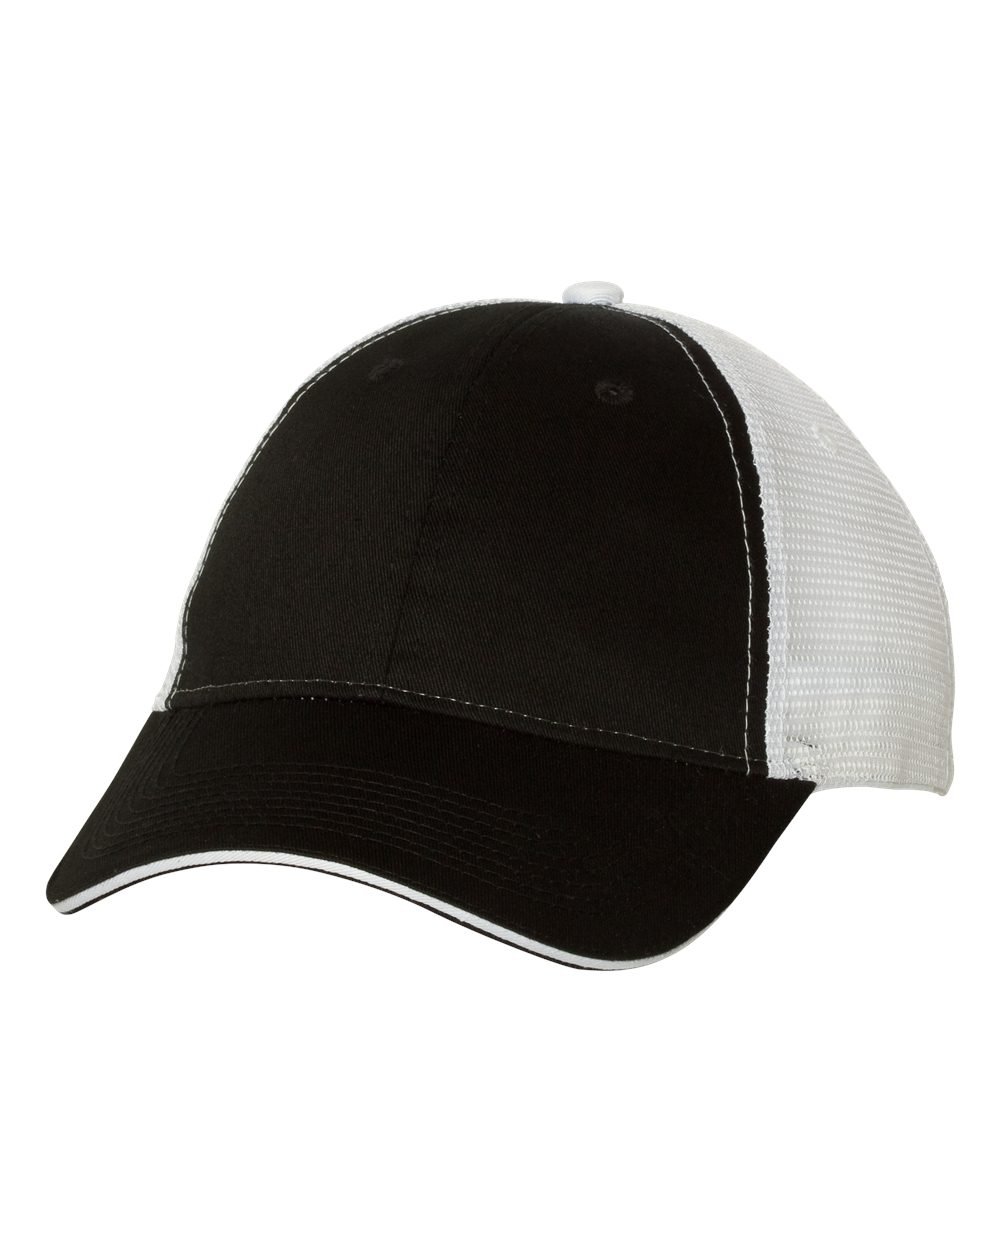 Valucap S102 - Sandwich Trucker Cap